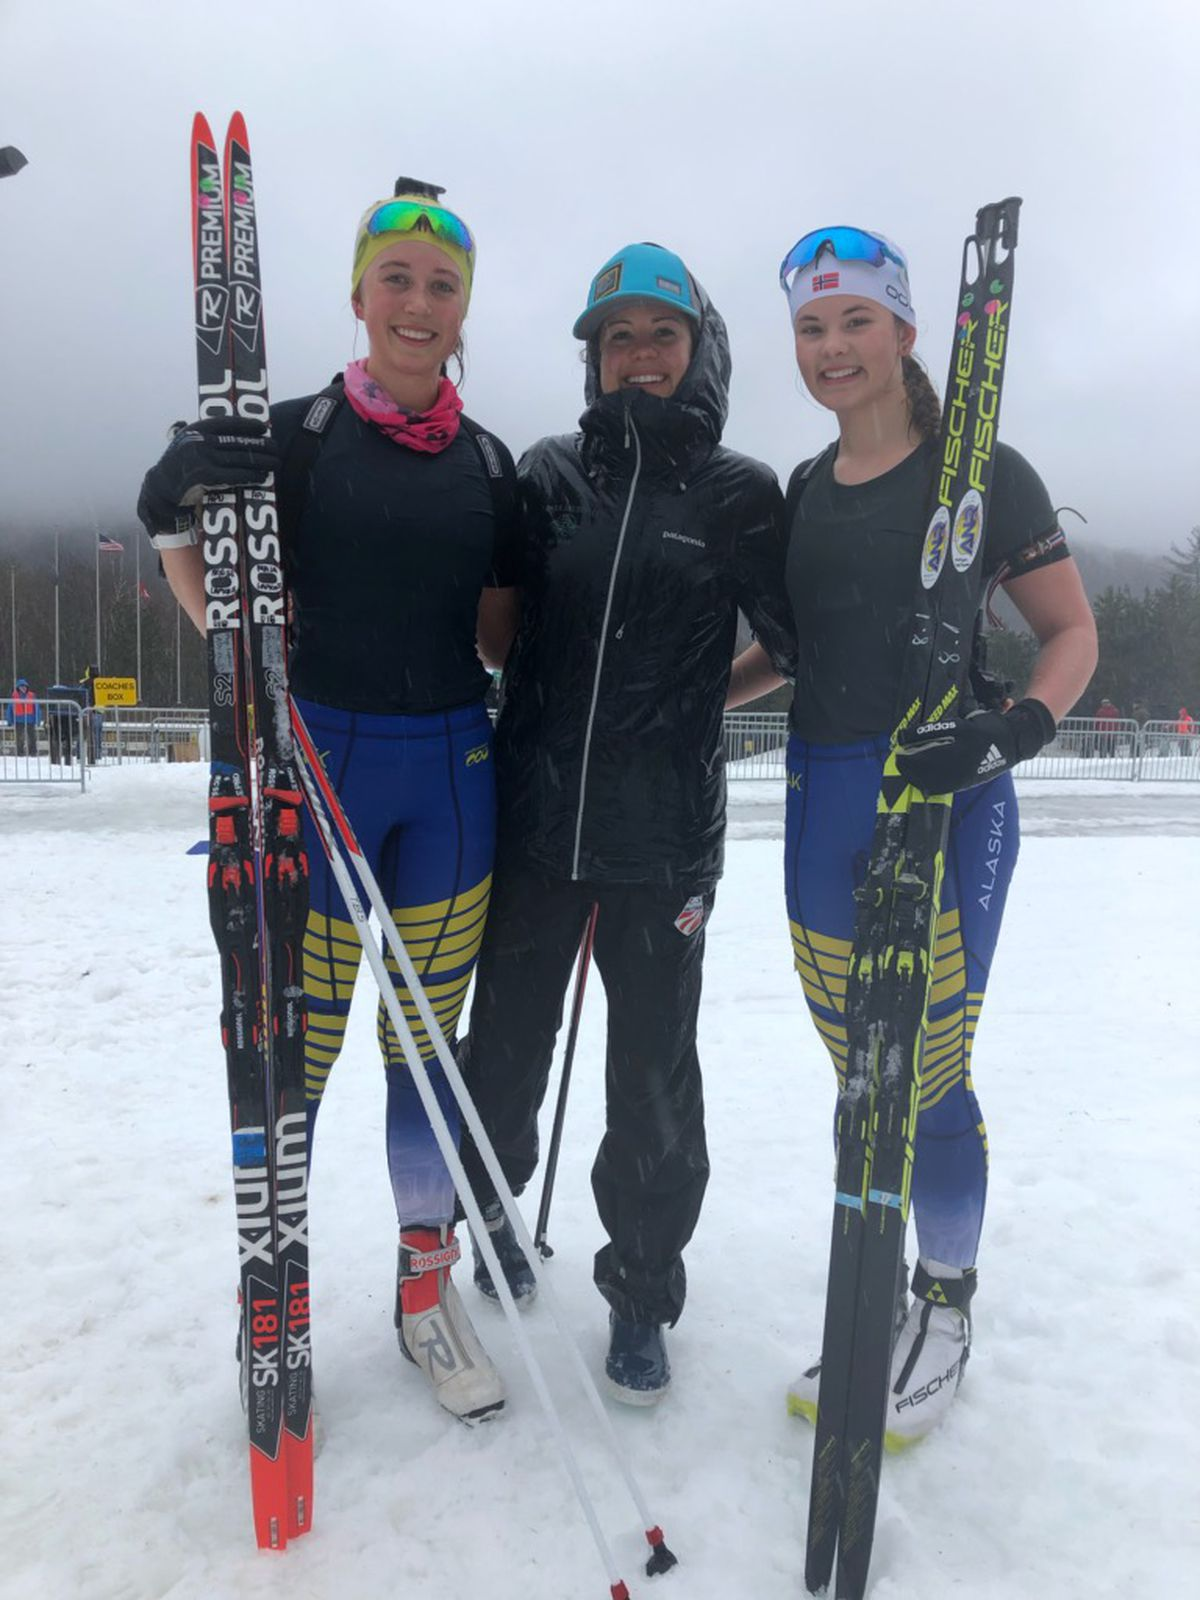 From left, Maja Lapkass, Marine Dusser and Helen Wilson share a moment after Lapkass' victory in the mass-start junior girls race at the U.S. Biathlon Championships late last month in Jericho, Vermont. (Photo courtesy of Marine Dusser).